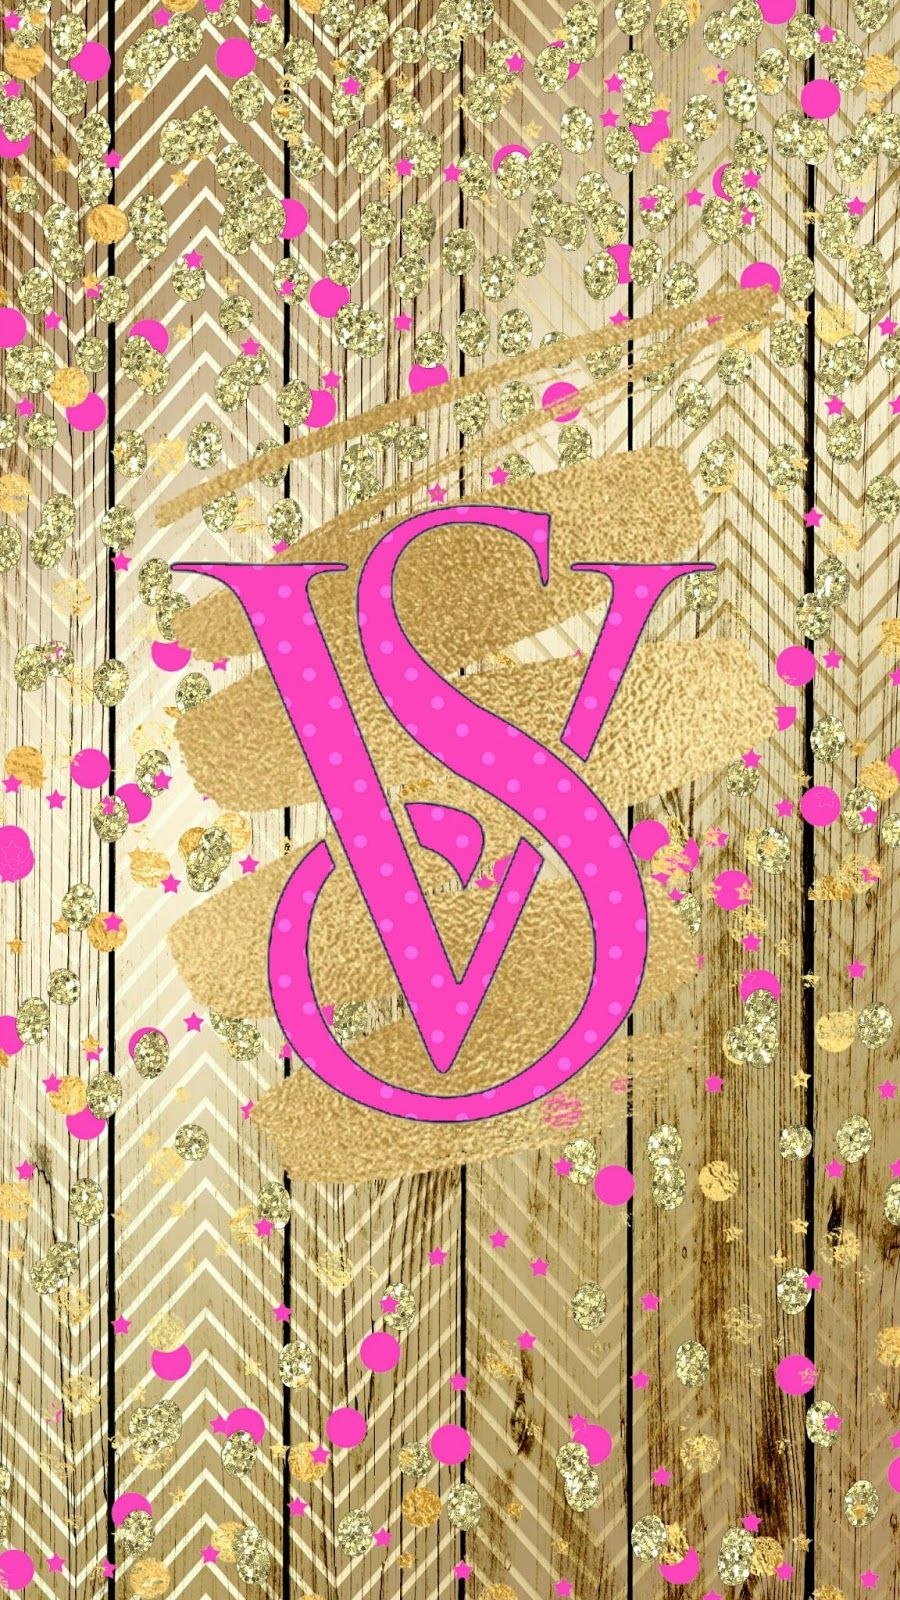 Pin by xxprincessxo on loves pinterest wallpaper victoria colorful wallpaper pink wallpaper computer wallpaper wallpaper backgrounds victoria secret wallpaper victoria secret pink cell phone wallpapers voltagebd Choice Image